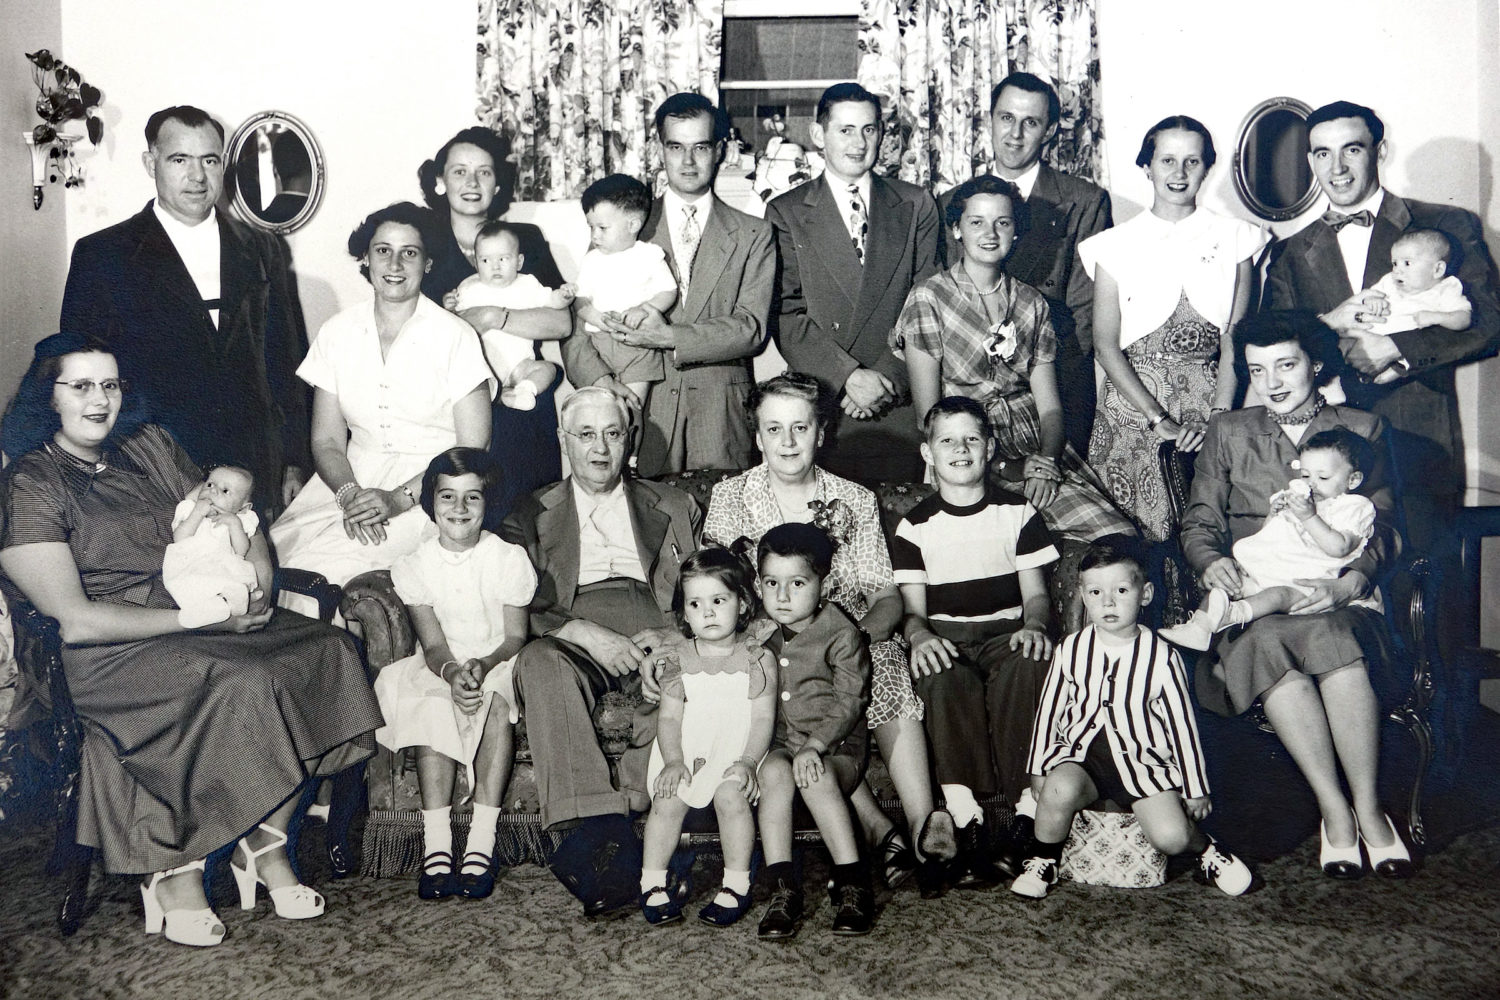 Back row, left to right: Jerry Austin, Rita (Tierney) Austin, Isabel (Tierney)Williams with Greg Williams in her arms, Jack Williams with Chris Williams in his arms, Ray Tierney Jr, Ann Tierney, Ed Kolb, Mary (Tierney) Dodd, Leo Dodd with Paul Dodd in his arms, Front row: Martha (Tierney) Kolb with Nancy Kolb in her arms, Mary Austin, Ray Tierney Sr. Mary (Miami) Tierney with Kathleen Kolb and Jim Austin sitting in front of her, Dick Austin, Ray Tierney III, Rita (Ritzenthaler) Tierney with Debby Tierney in her arms.